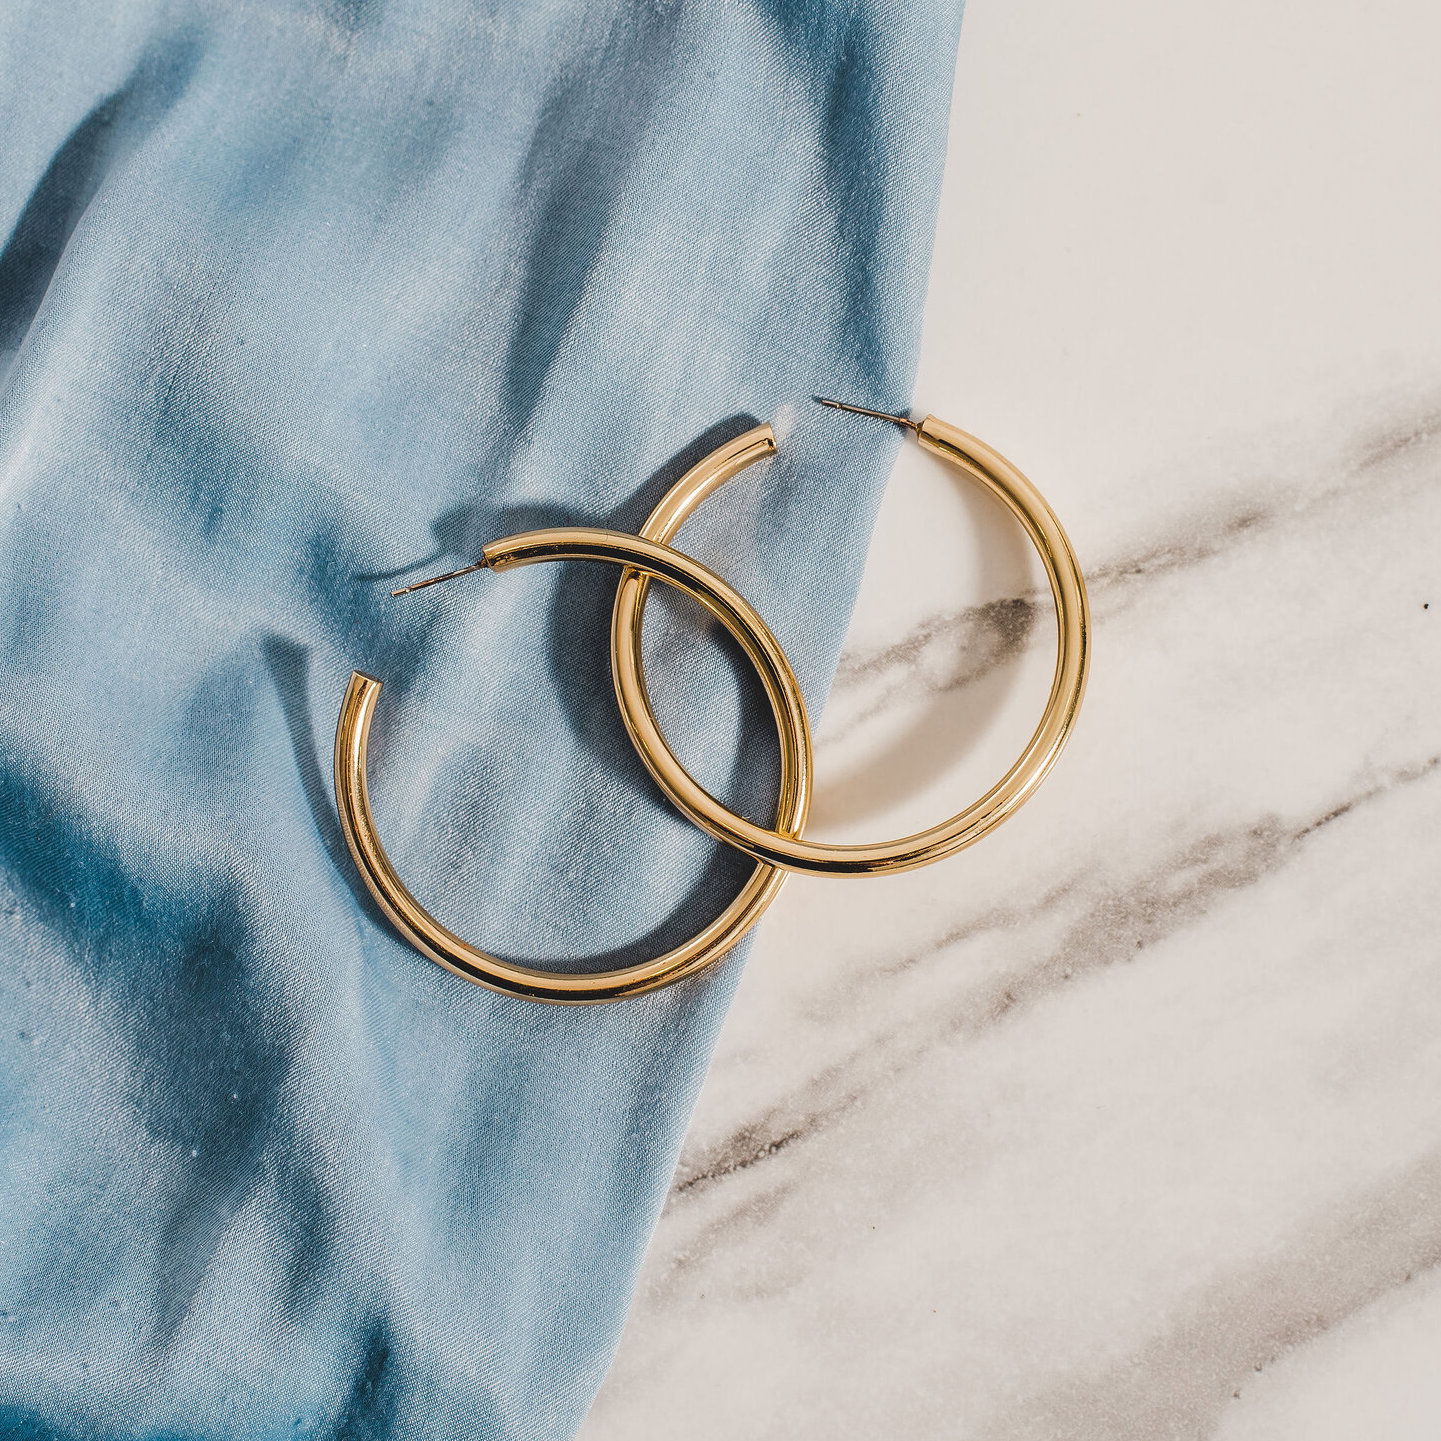 The Statement Hoops by Ora Ana